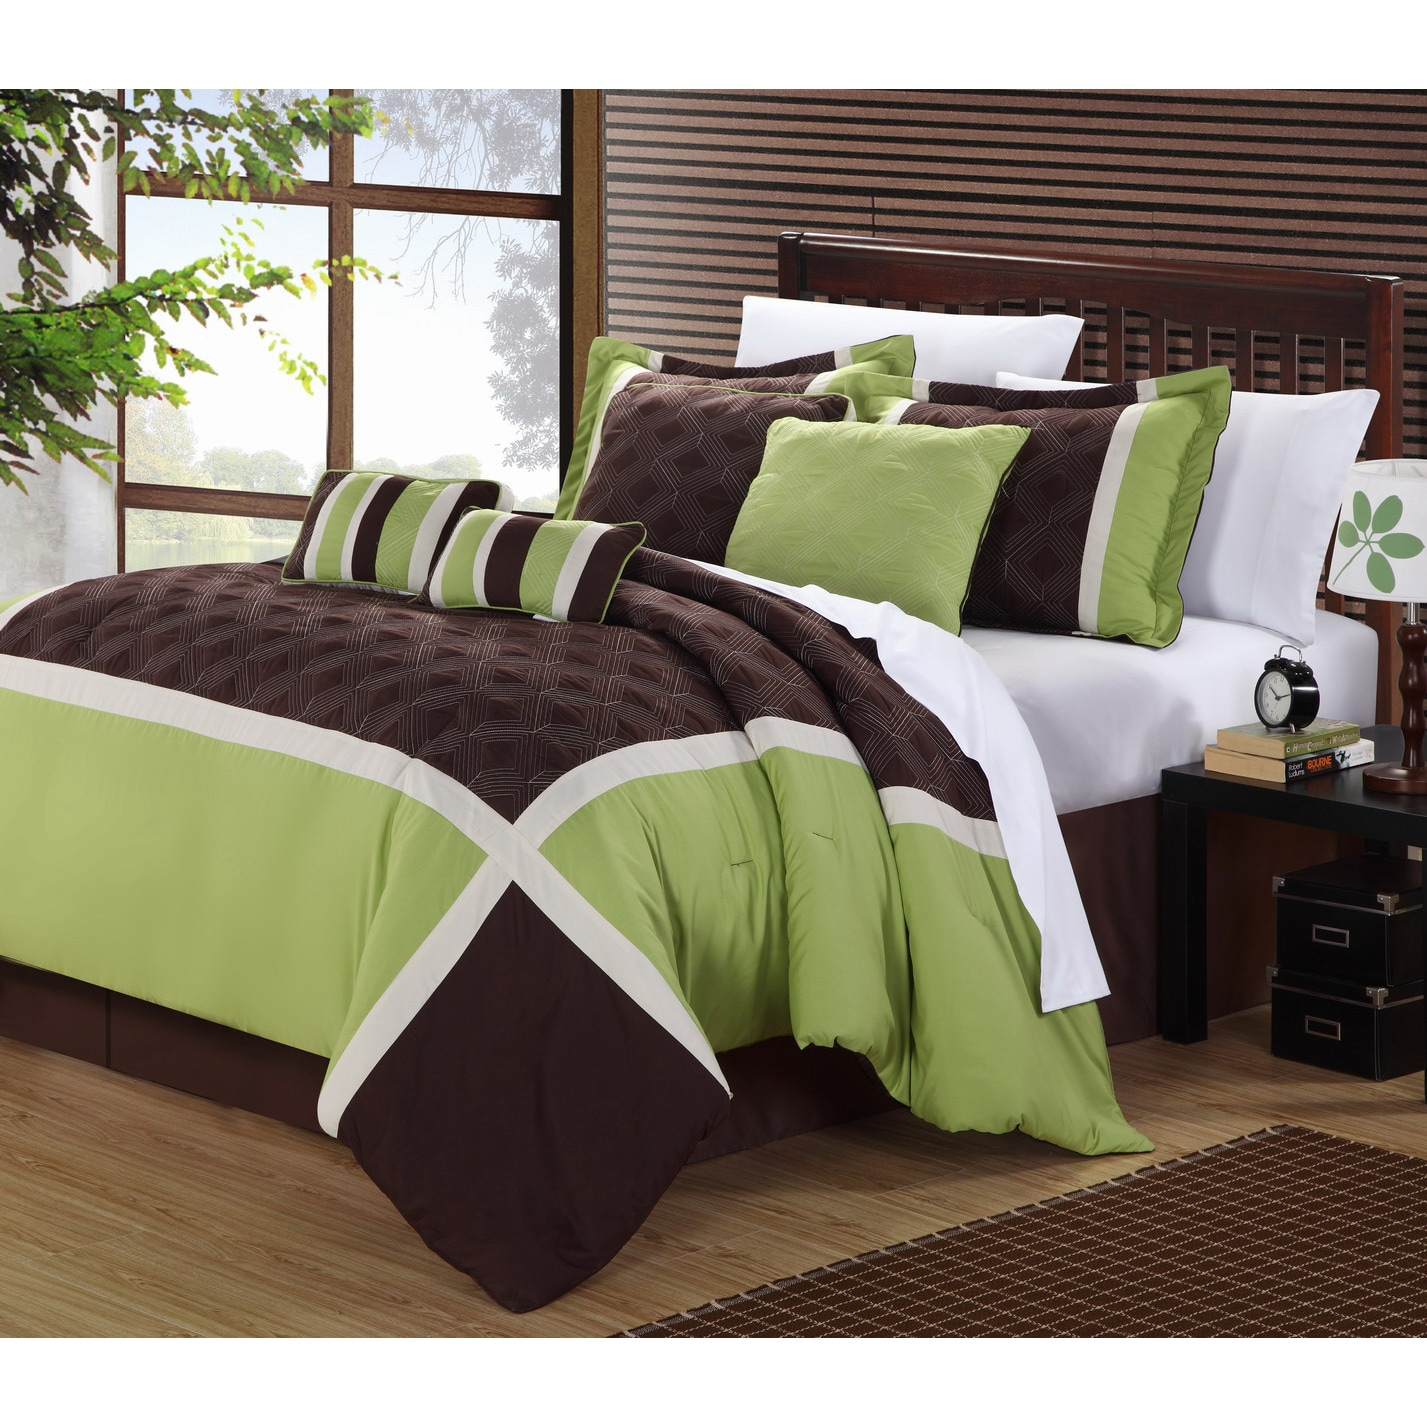 Shop Green Brown Oversized 8 Piece Comforter Set On Sale